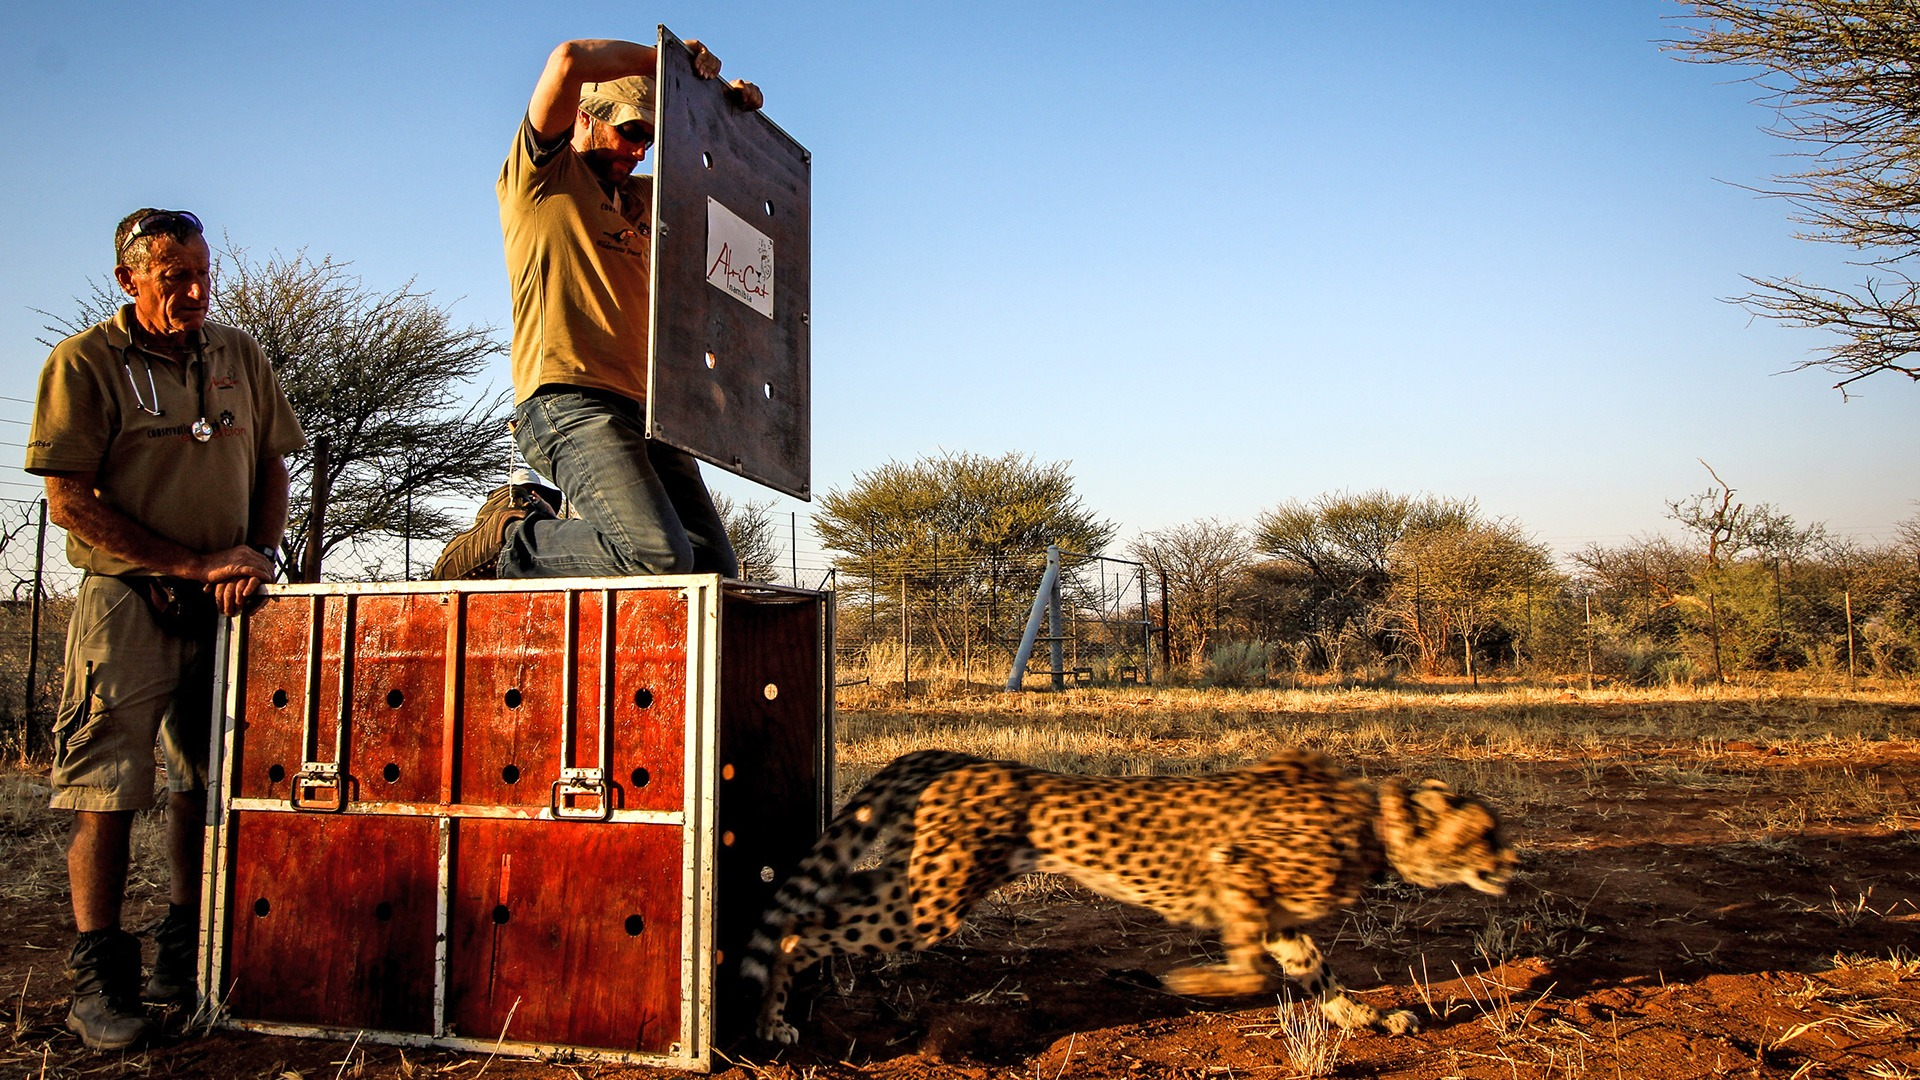 AfriCat Foundation worker release cheetah into the wild, Namibia